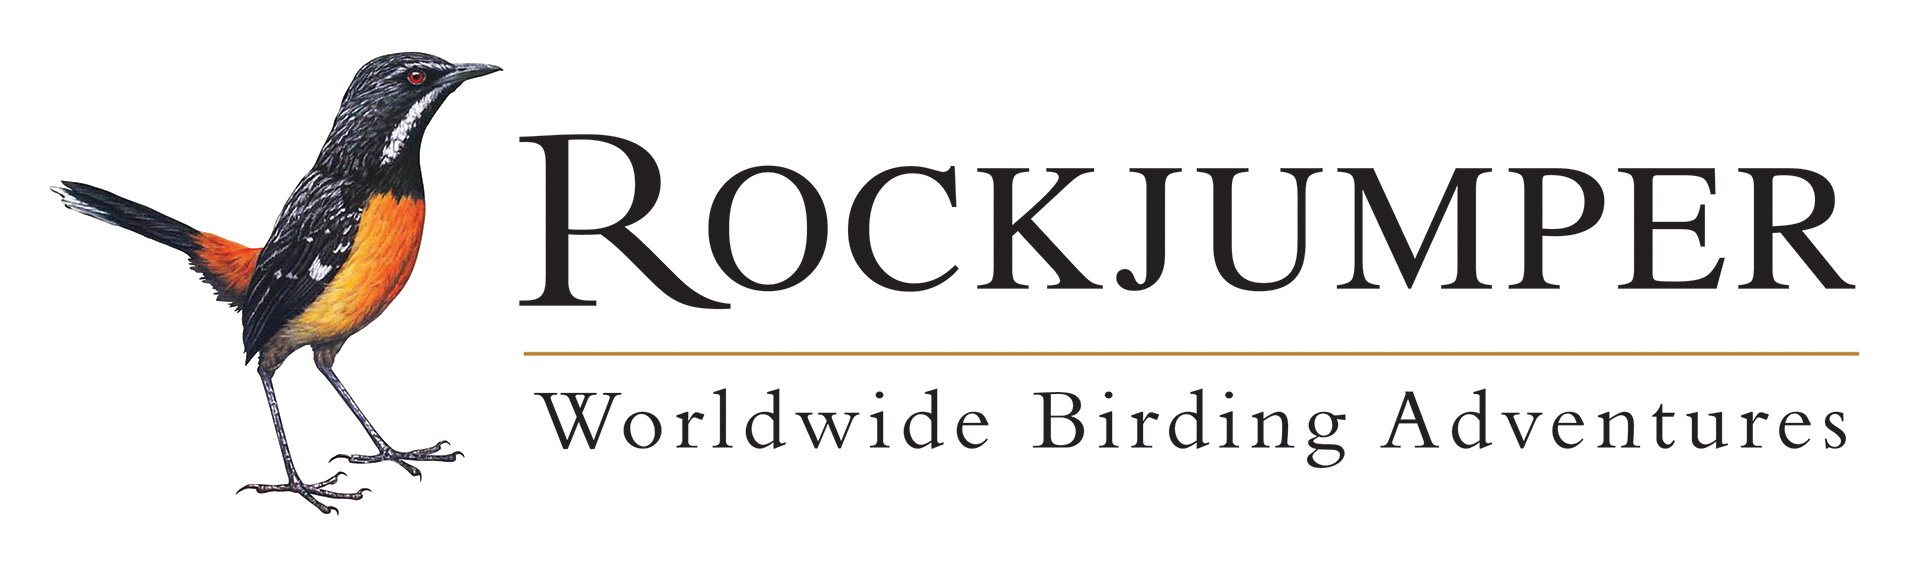 rockjumper-birding-logo-amenities-garlington-estate-equipment-luxury-country-development-hilton-midlands-meander-countryside-kzn